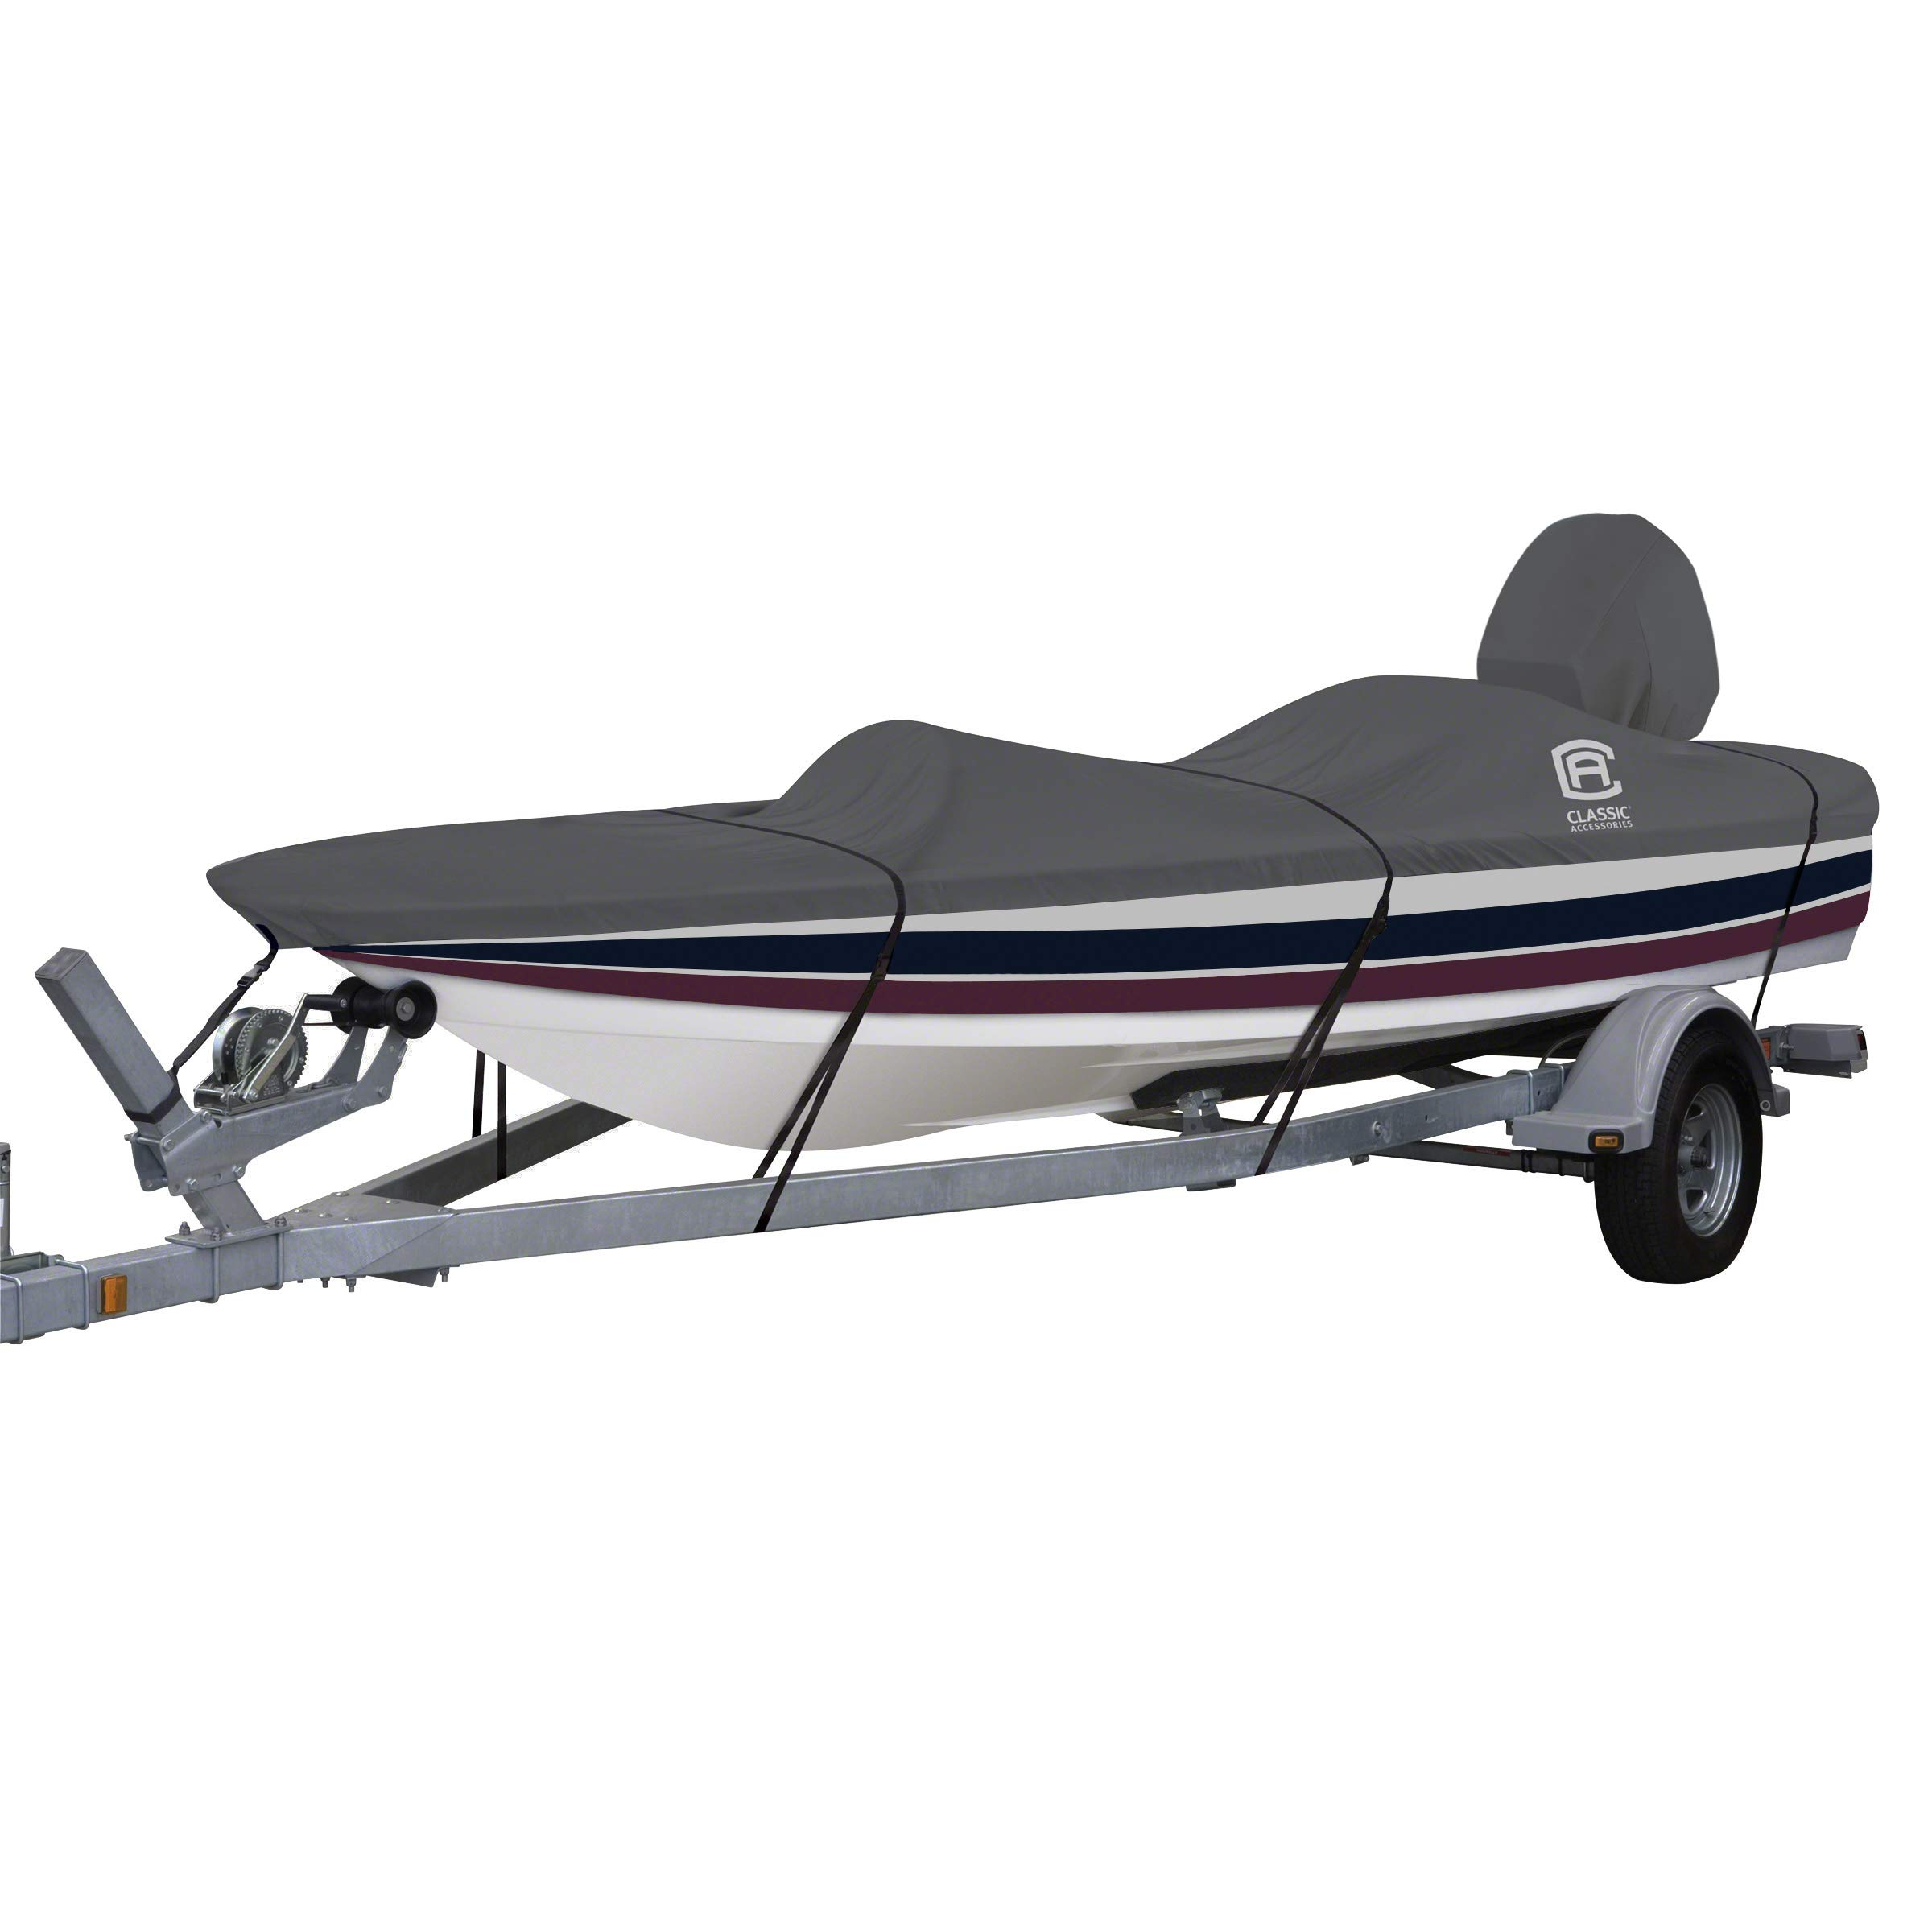 Classic Accessories StormPro Heavy Duty Outboard Ski-Boat Cover with Support Pole, Fits Boats 18'6'' - 19'6'' L x 89'' W by Classic Accessories